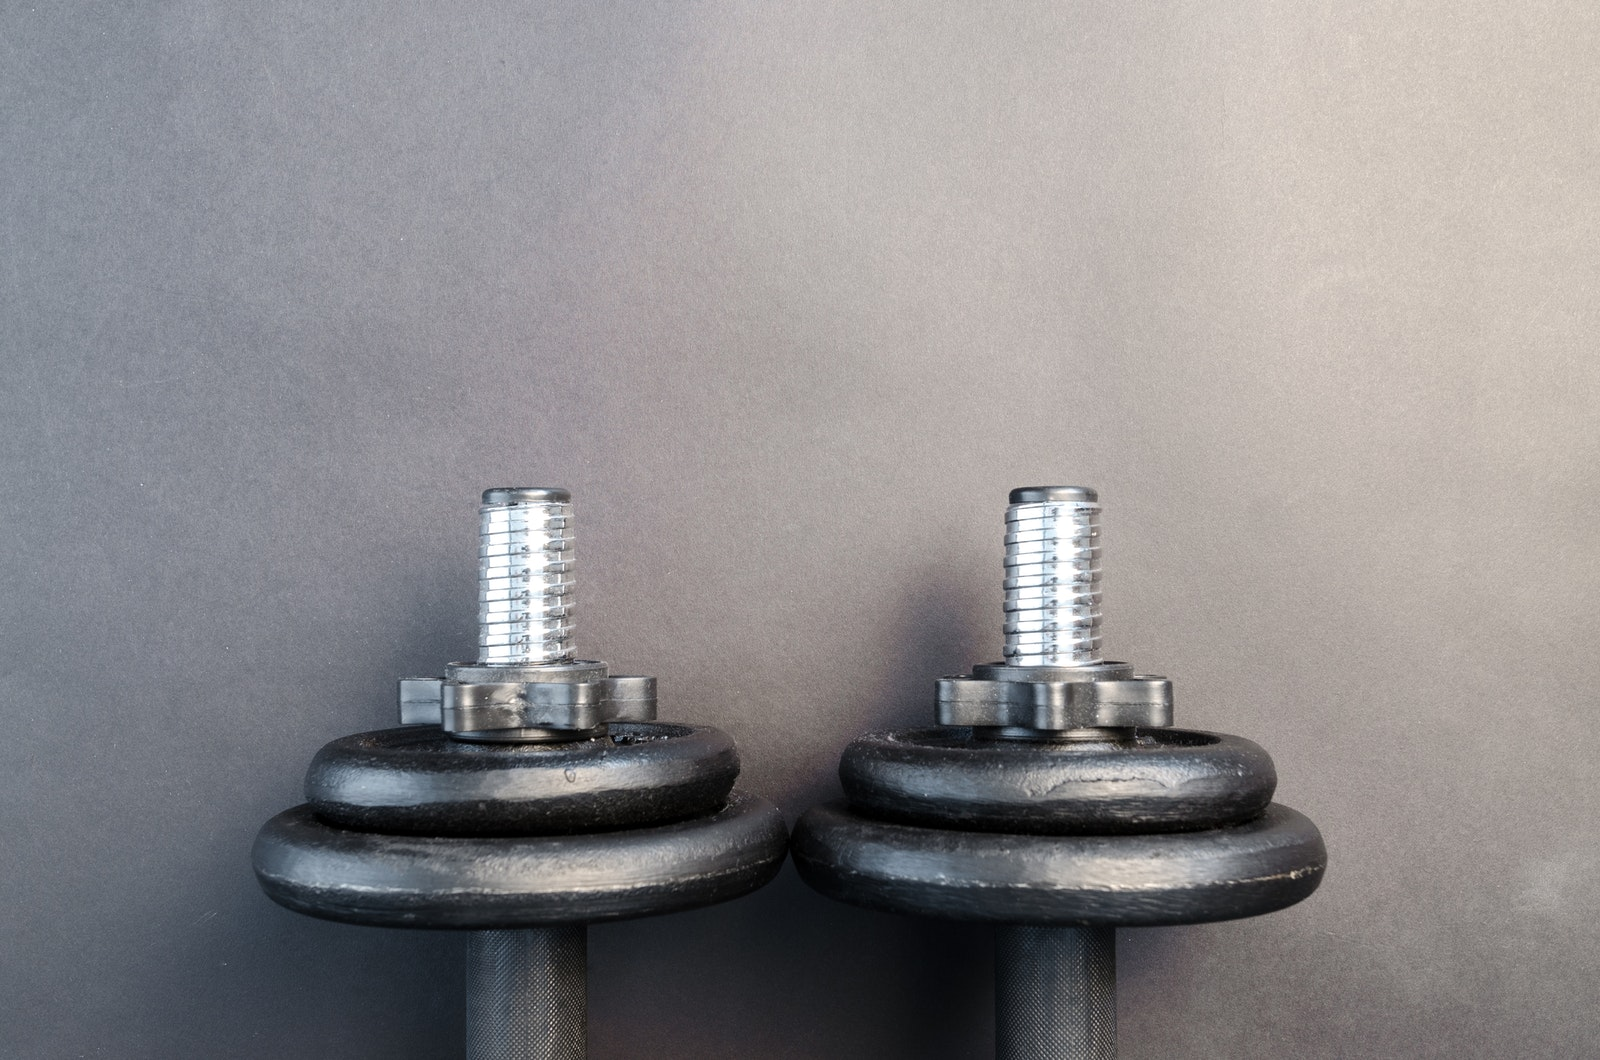 Dumbbell hand weights for strength training and muscle building at home